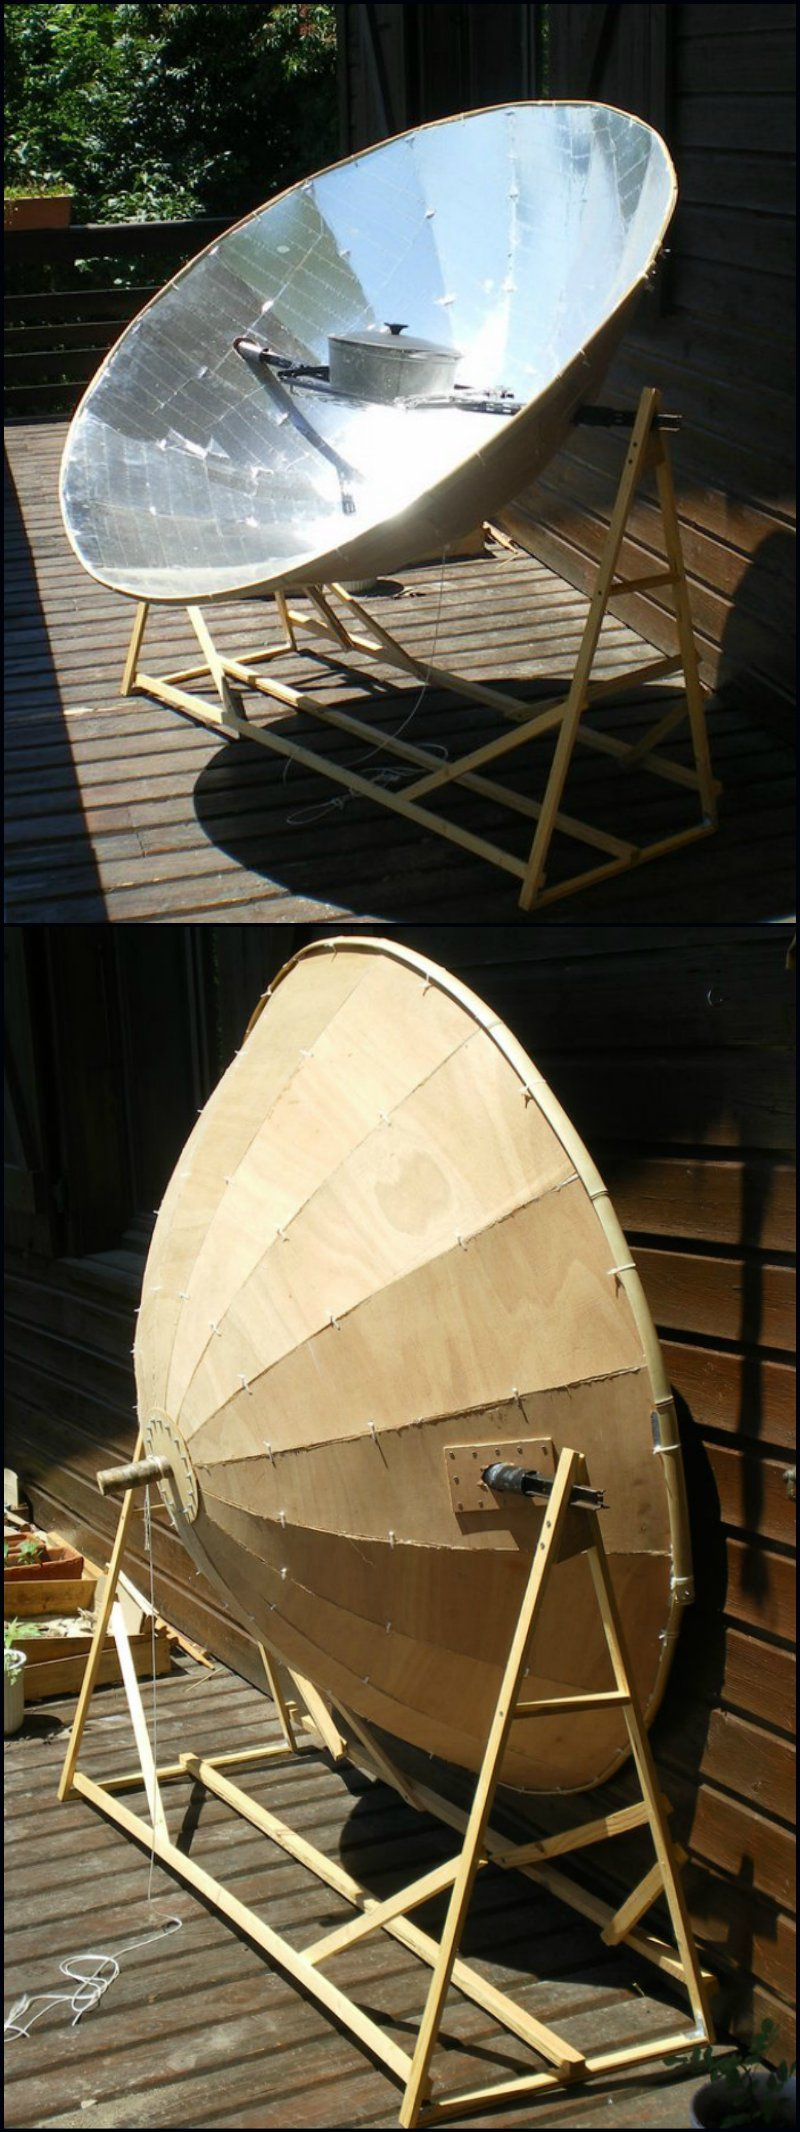 How to build a parabolic solar oven http